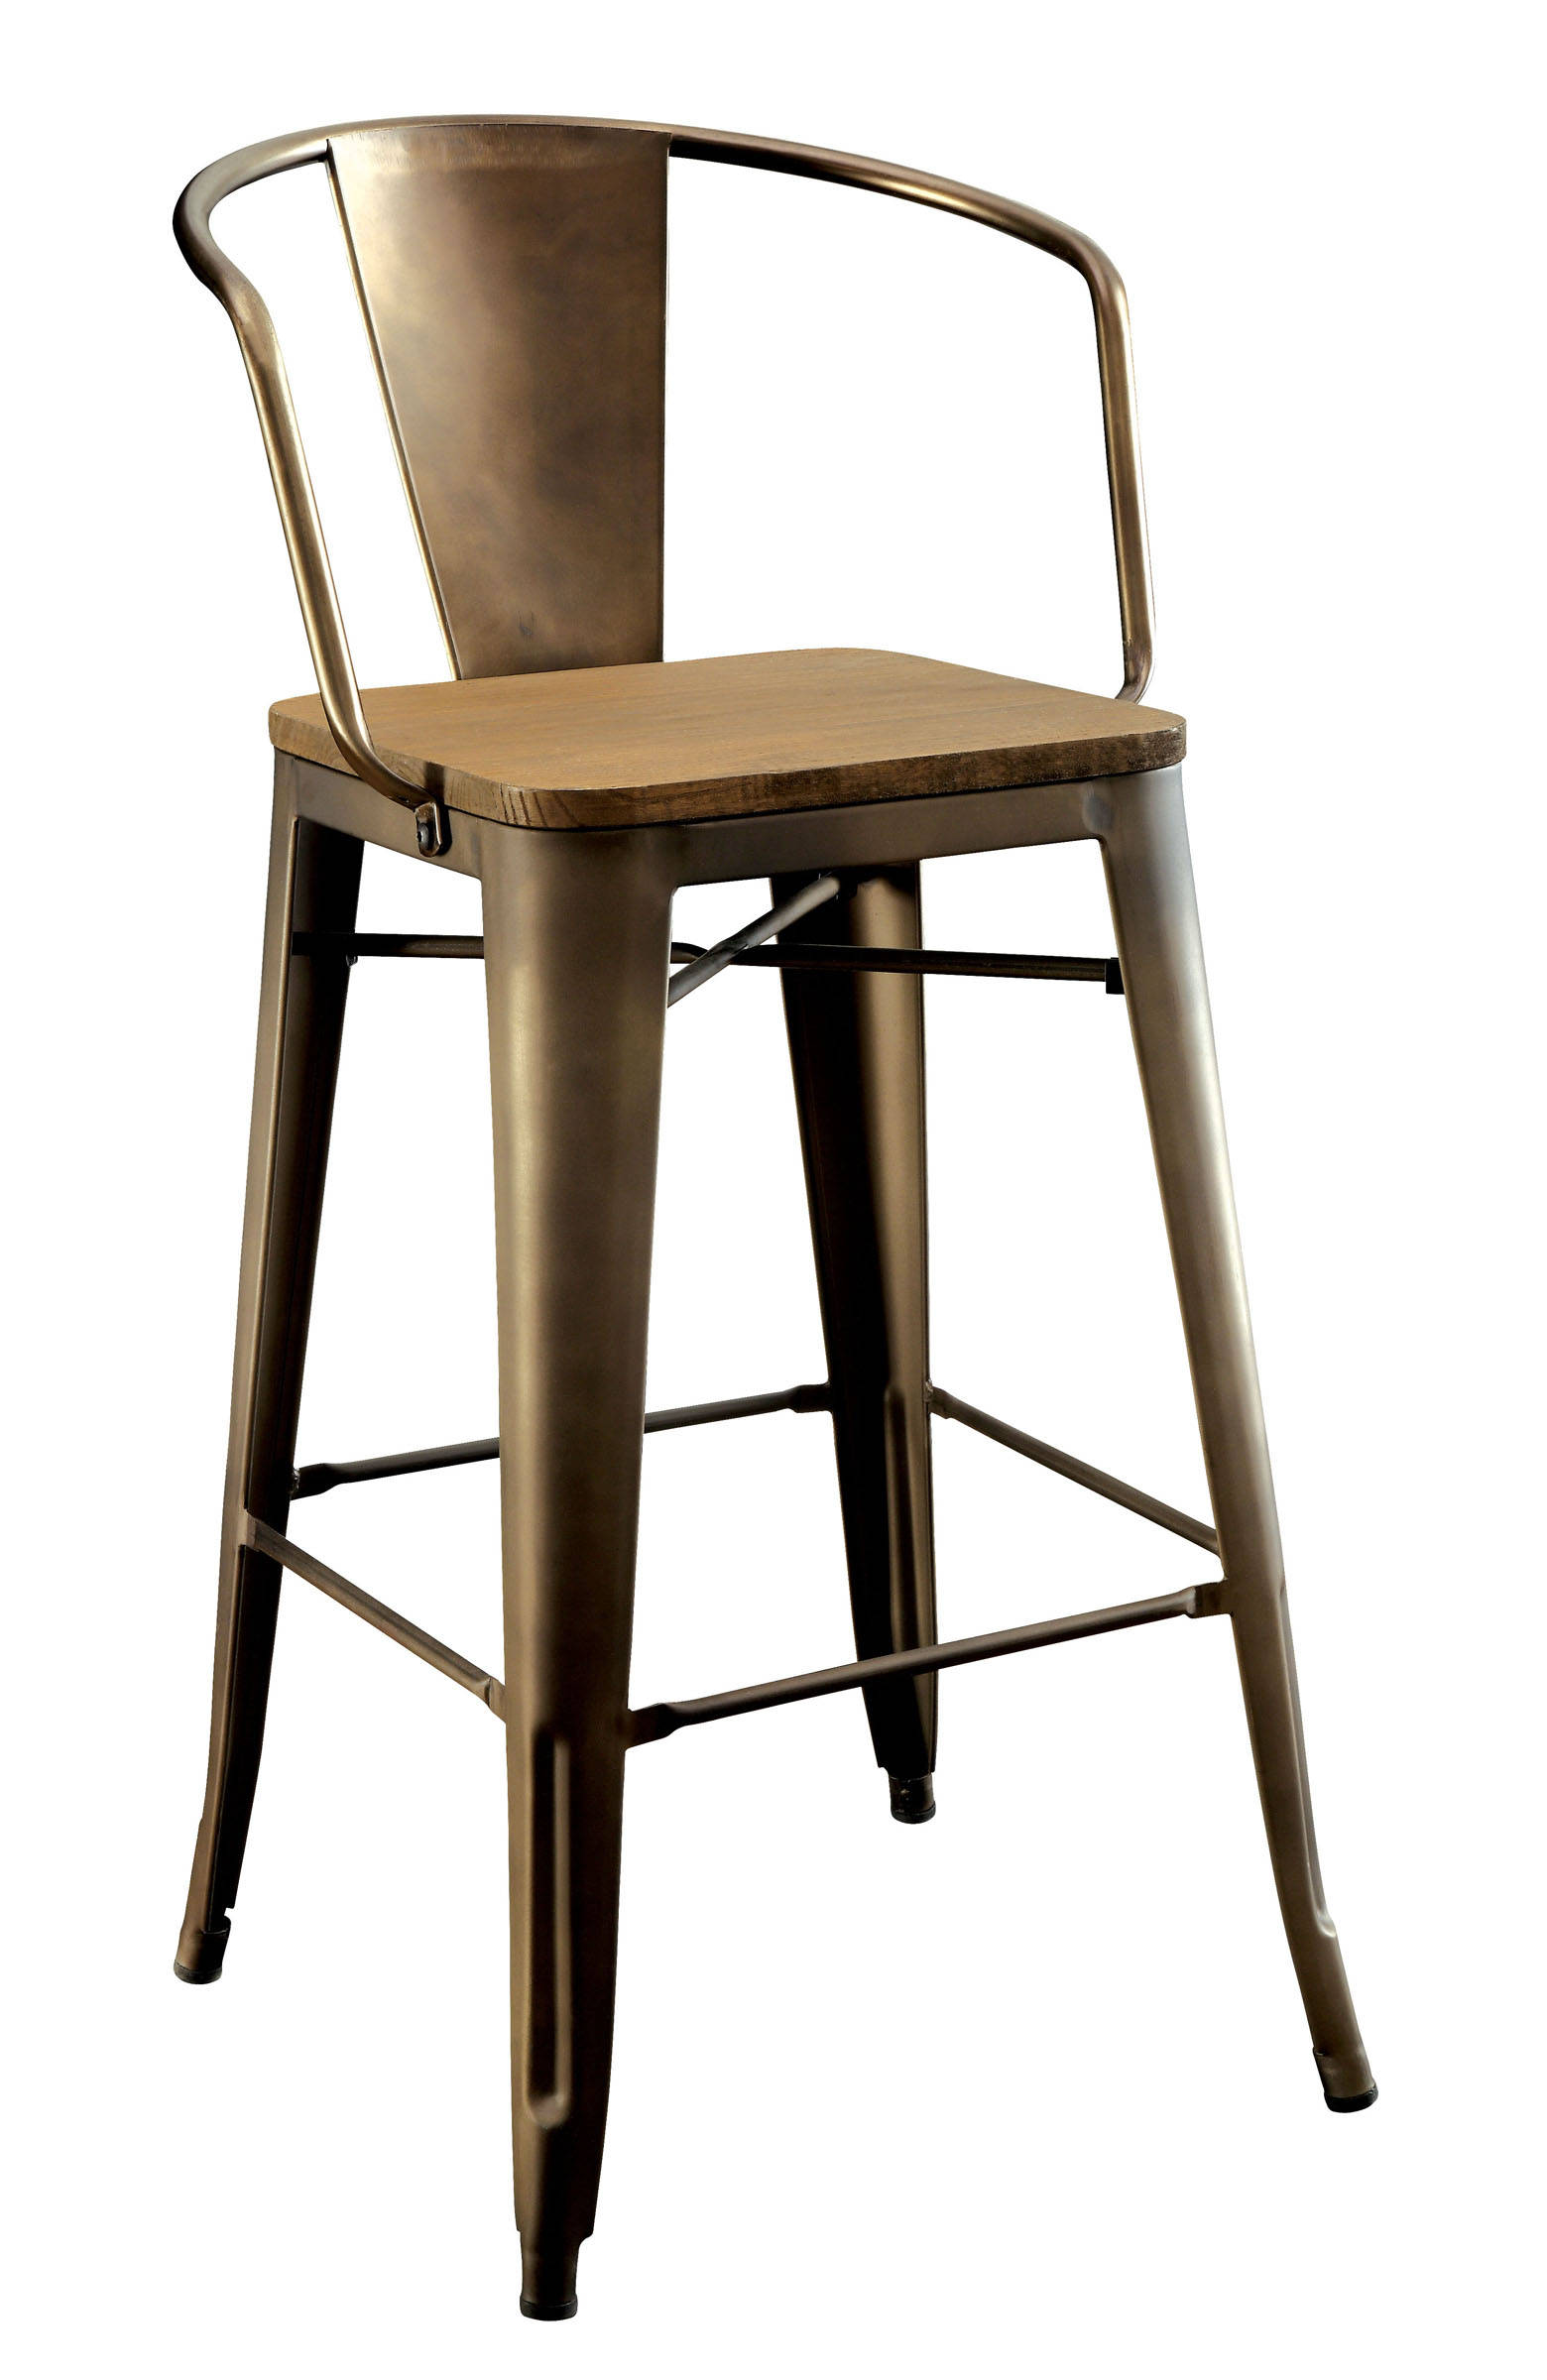 Peachy 2 Furniture Of America Cooper Ii Counter Height Chairs Gmtry Best Dining Table And Chair Ideas Images Gmtryco